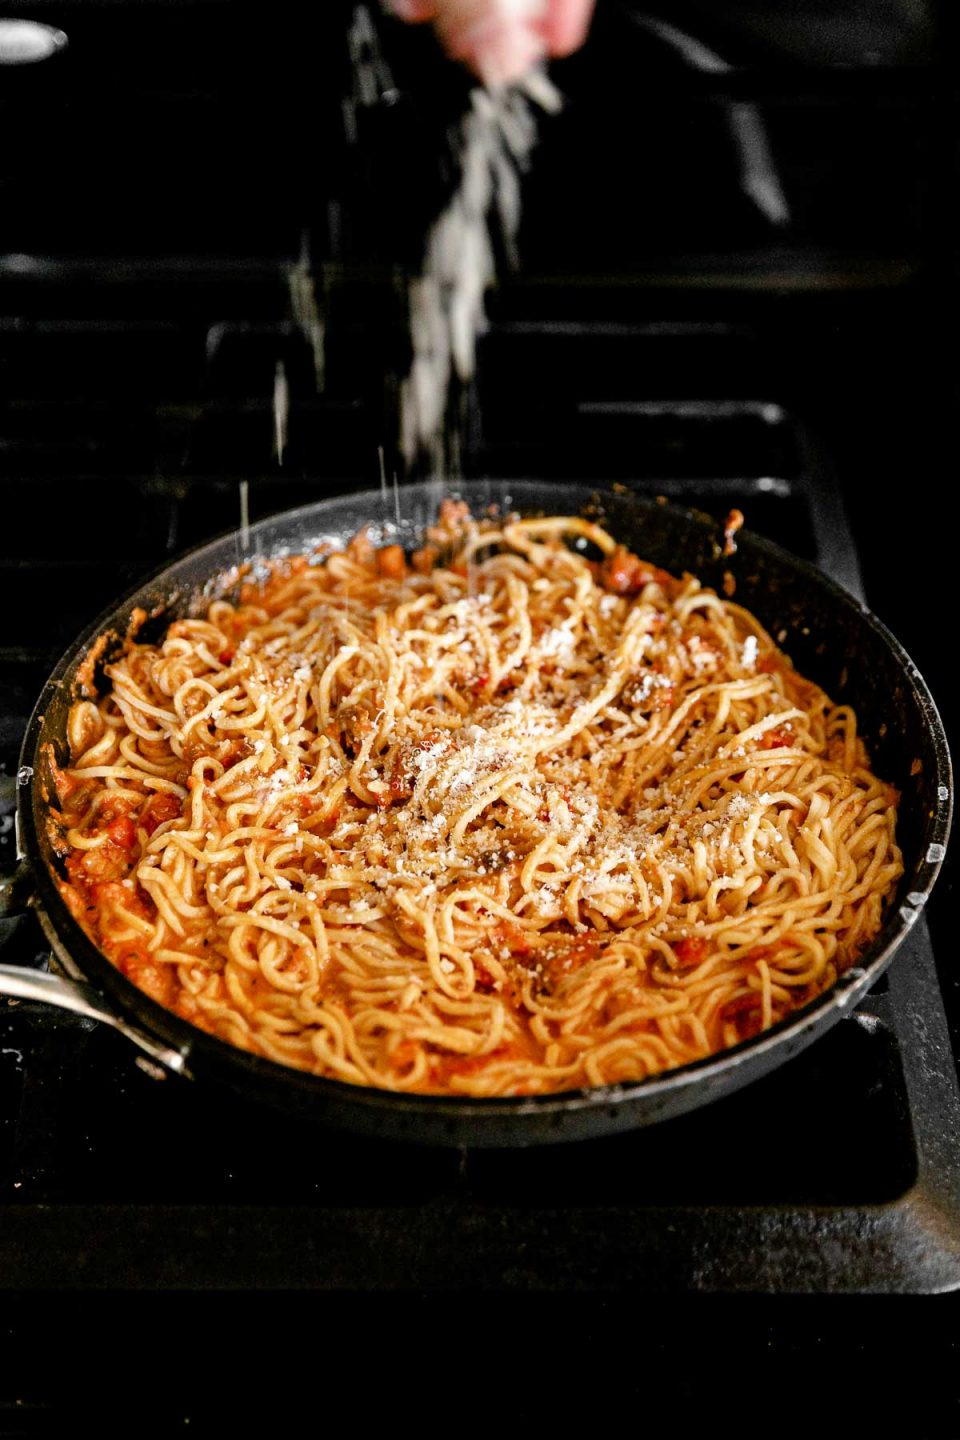 A black frying pan filled with fresh homemade pasta tossed in bolognese sauce is dusted with freshly grated parmigiano reggiano. The frying pan rests atop a gas stovetop range.